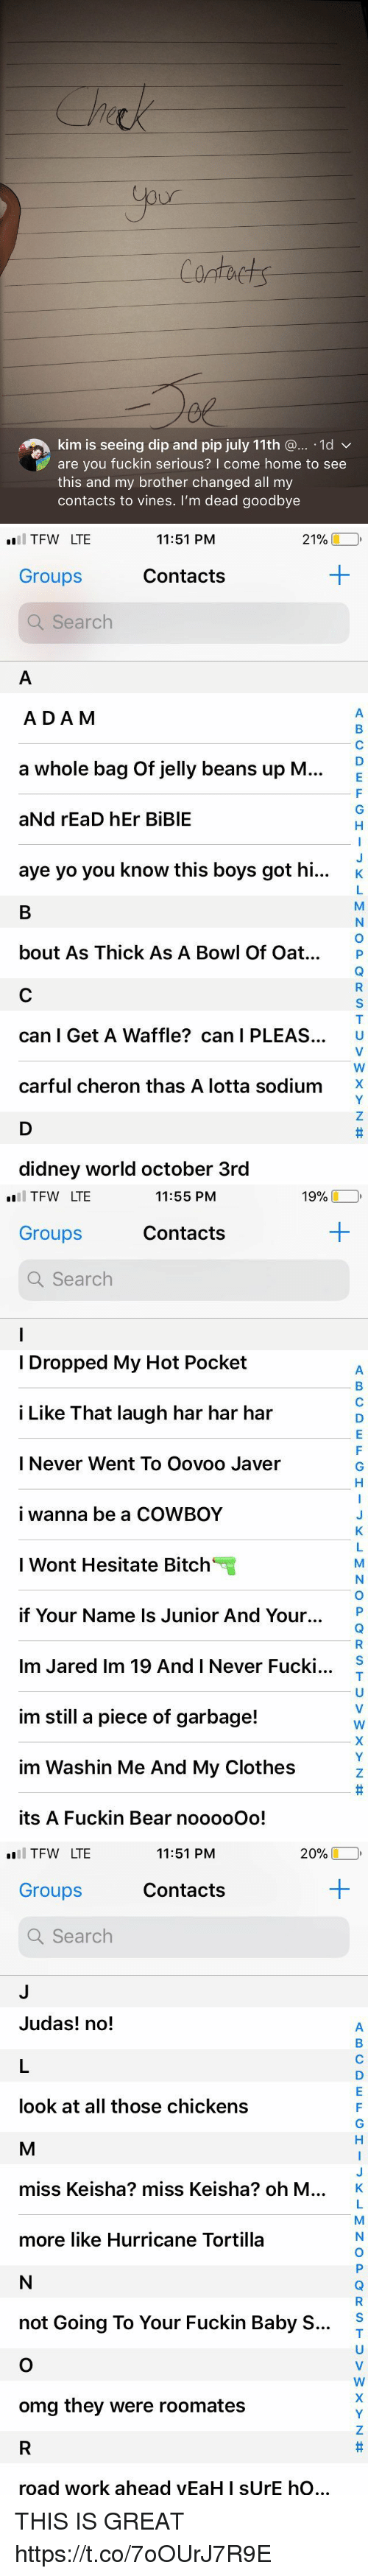 """M K: Contaets  kim is seeing dip and pip july 11th @... .1d v  are you fuckin serious? I come home to see  this and my brother changed all my  contacts to vines. I'm dead goodbye   TFW LTE  Groups  Q Search  11:51 PM  21%し  Contacts  ADA M  a whole bag of jelly beans up M  aNd rEaD hEr BiBlE  aye yo you know this boys got hi...  K  bout As Thick As A Bowl Of Oat. P  can I Get A Waffle? can I PLEAS. U  carful cheron thas A lotta sodium'X  didney world october 3rd   19%-,  l TFW LTE  Groups  Q Search  11:55 PM  Contacts  I Dropped My Hot Pocket  i Like That laugh har har har  I Never Went To Oovoo Javer  i wanna be a COWBOY  I Wont Hesitate Bitch""""  if Your Name Is Junior And Your.  Im Jared Im 19 And I Never Fucki  im still a piece of garbage!  im Washin Me And My Clothes  its A Fuckin Bear nooooOo!  S   20% □  l TFW LTE  Groups  Q Search  11:51 PM  Contacts  Judas! no!  look at all those chickens  miss Keisha? miss Keisha? oh M  K  more like Hurricane Tortilla  S  not Going To Your Fuckin Baby S...  omg they were roomates  ro  ad work ahead yEaH I sUrE  hO THIS IS GREAT https://t.co/7oOUrJ7R9E"""